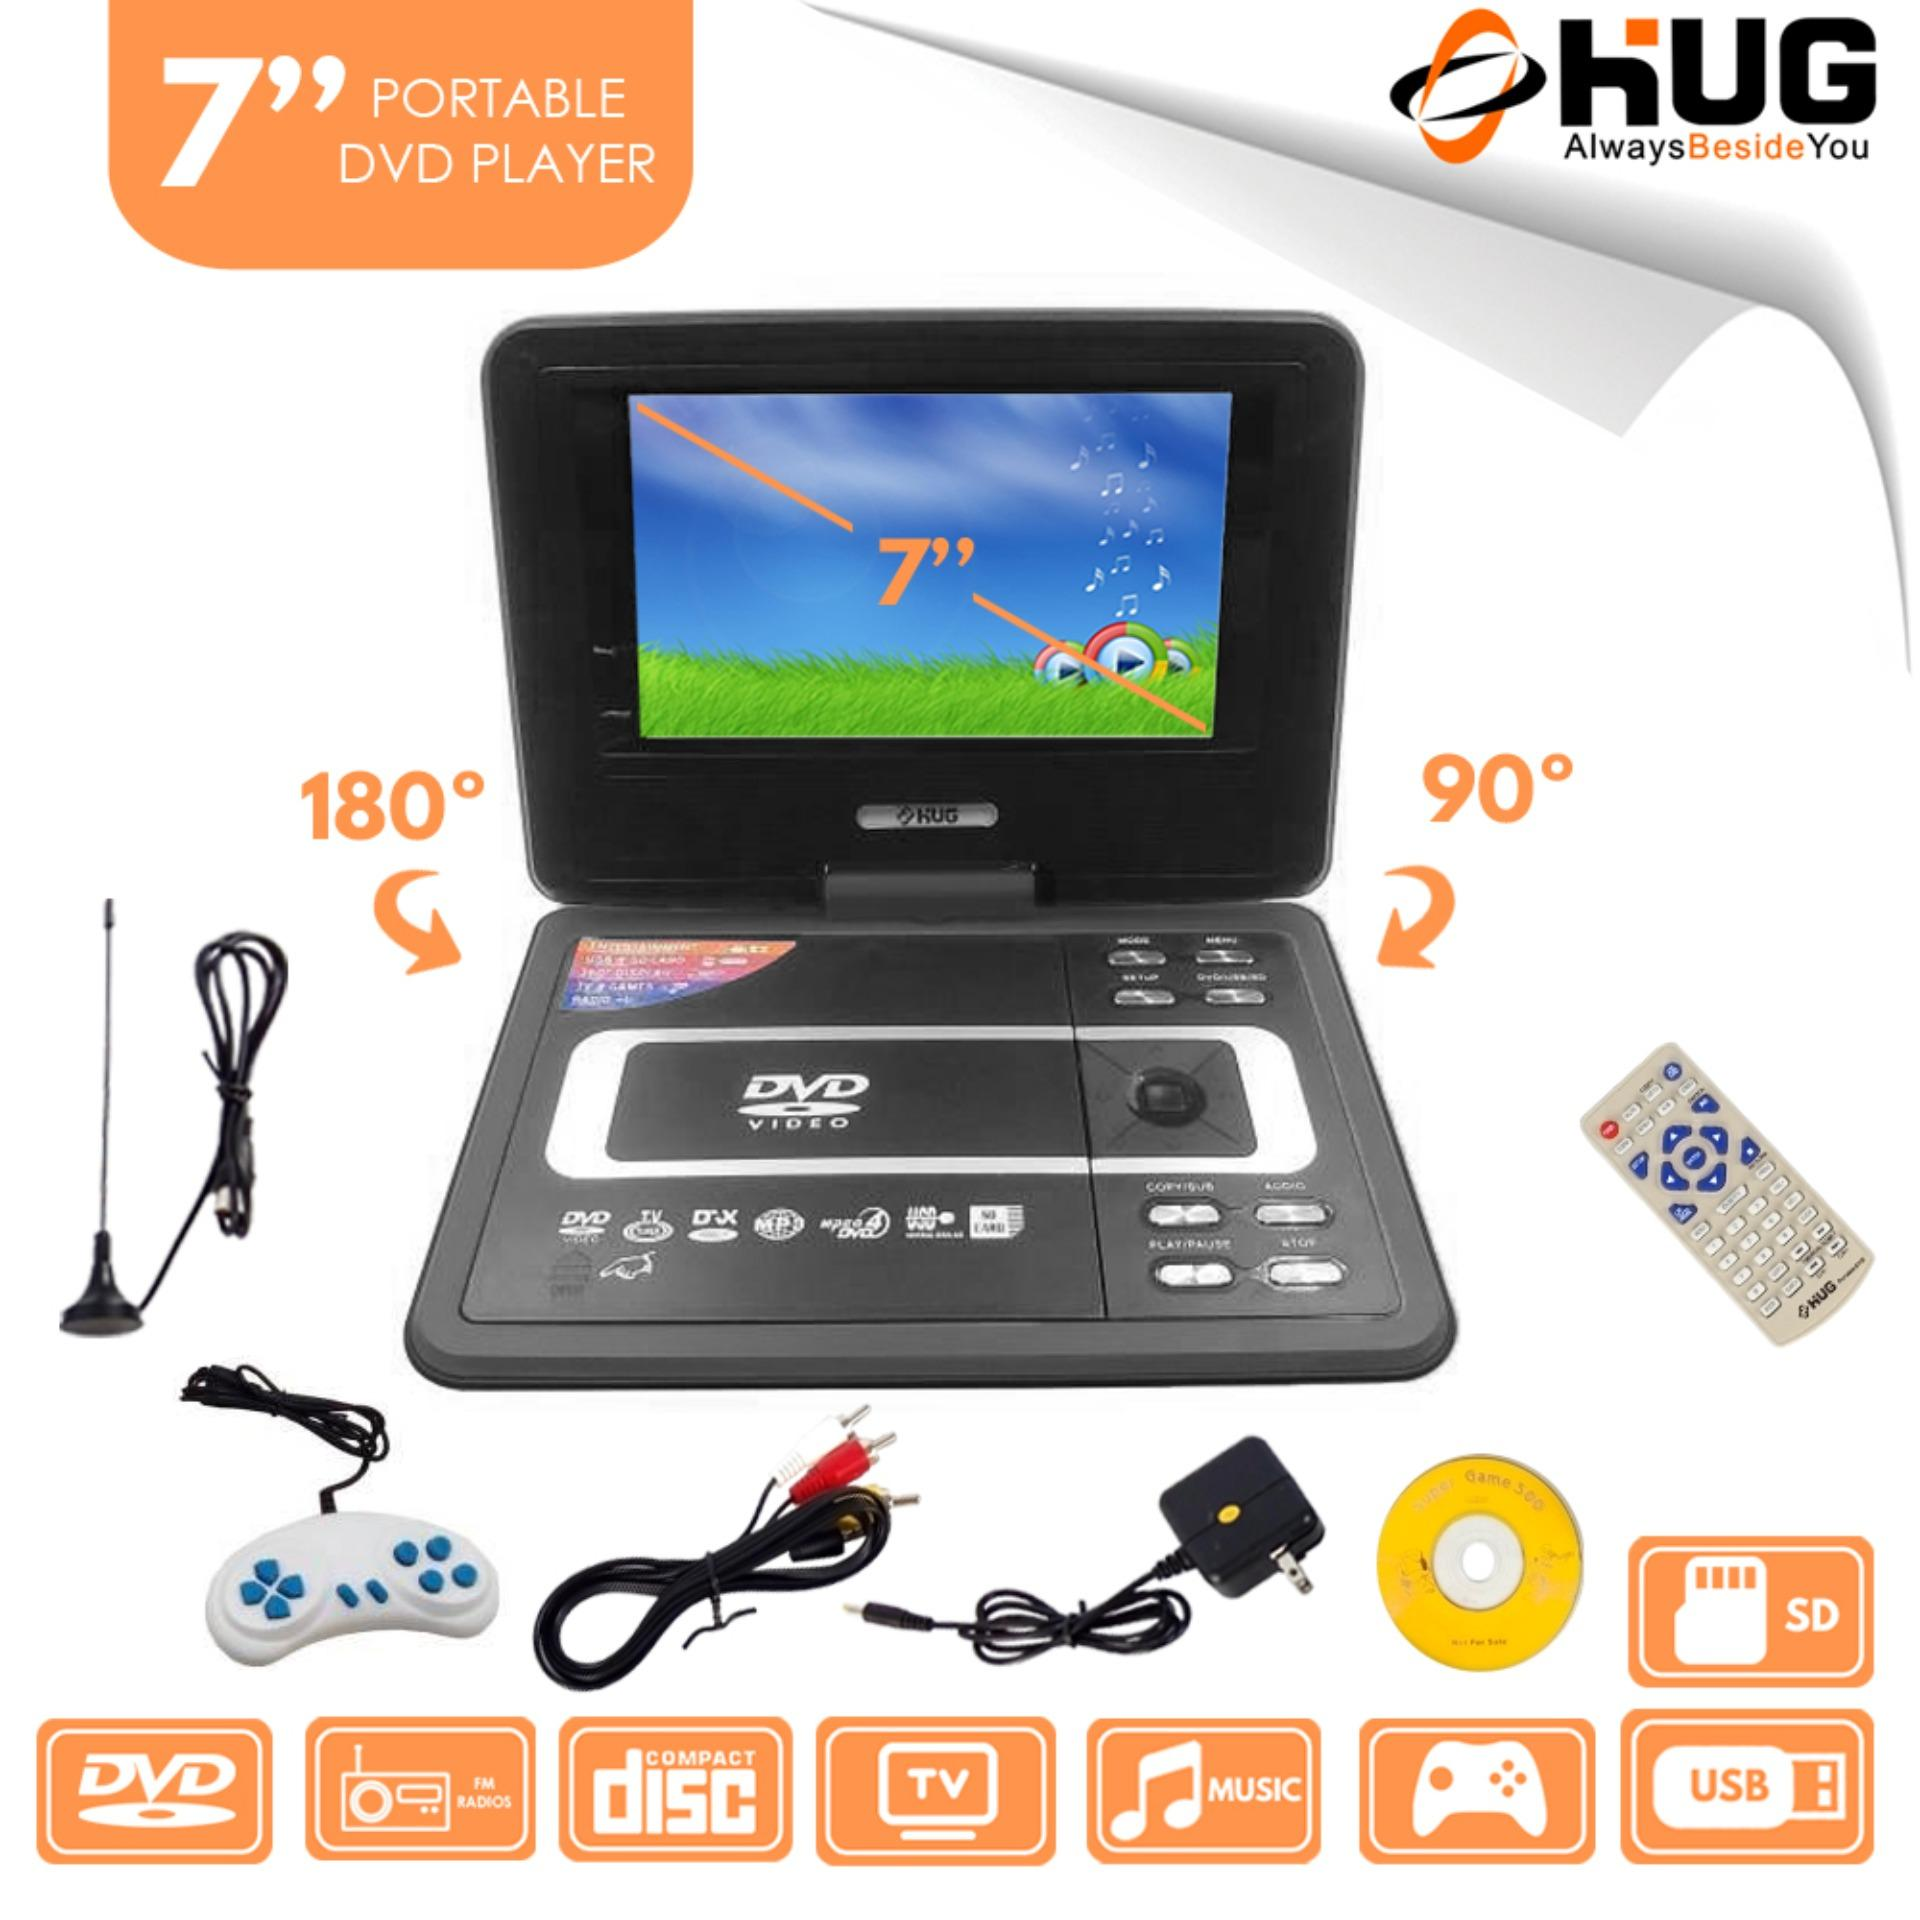 Hug Portable Dvd 7 Inches Lcd Screen Built-In Tv By Hug Official Store.